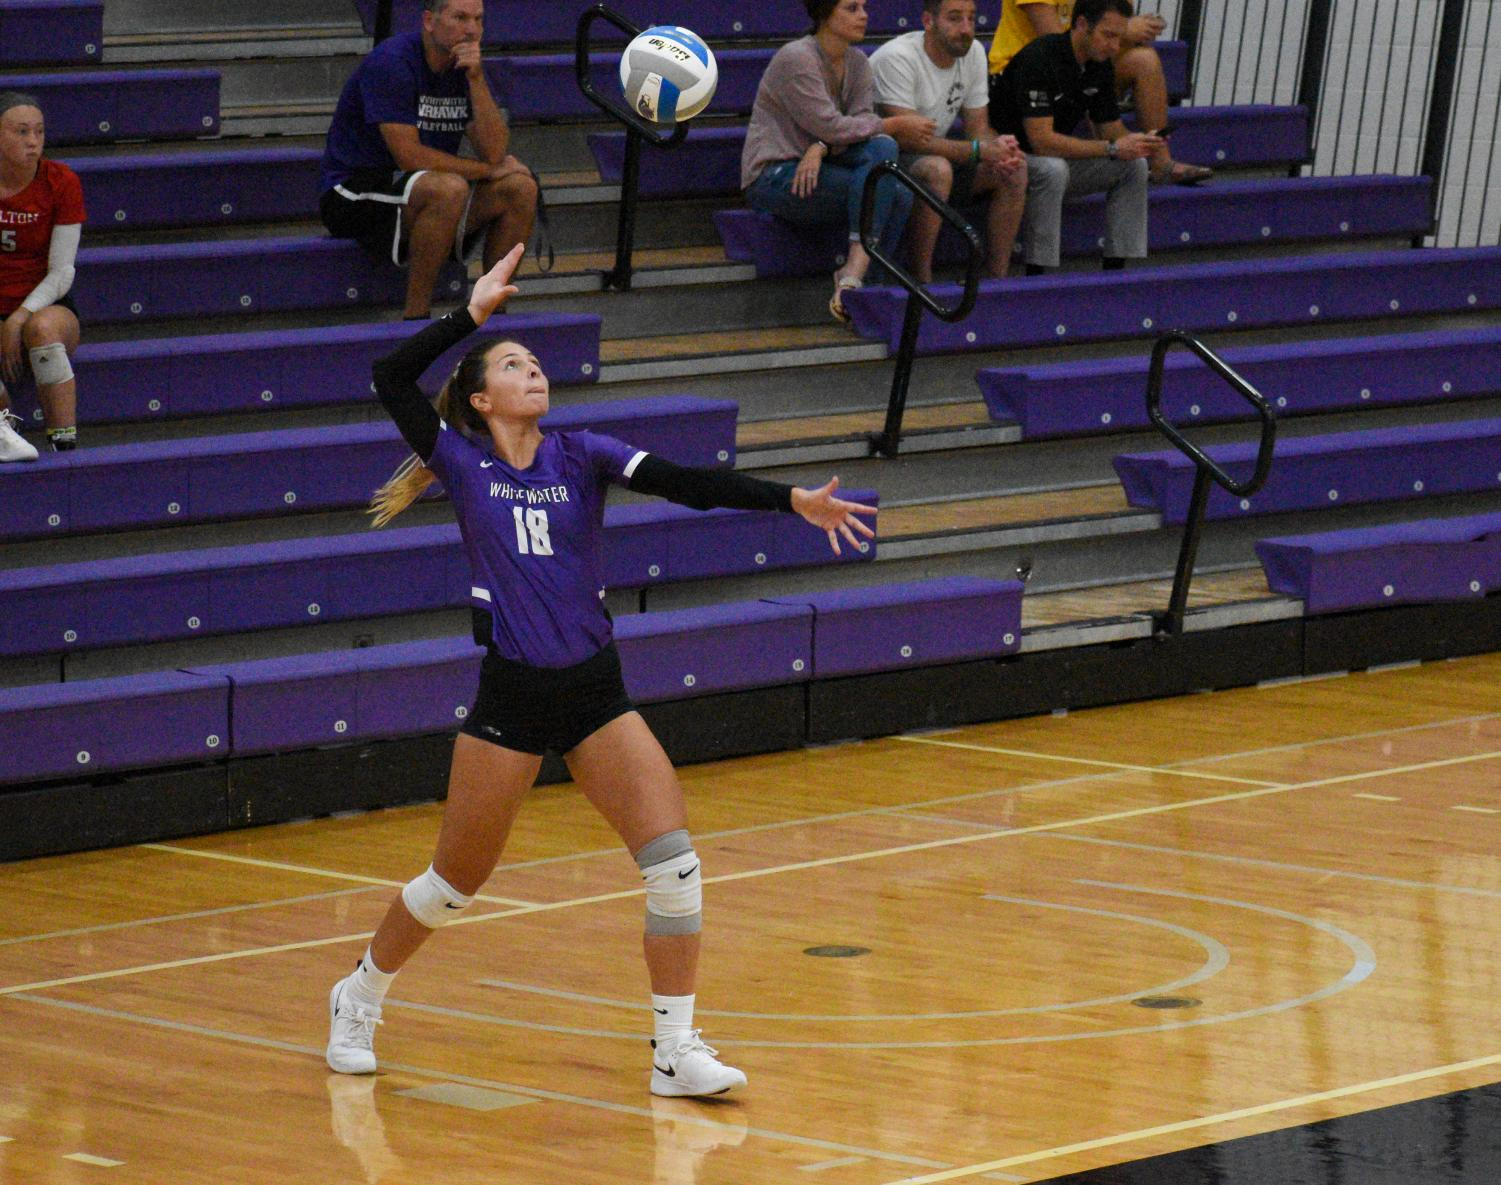 Hailey Mackenthun serves the ball during the Wednesday, Sept. 4 game where the Warhawks triumphed against the Carthage college with a score of 3 to 1.